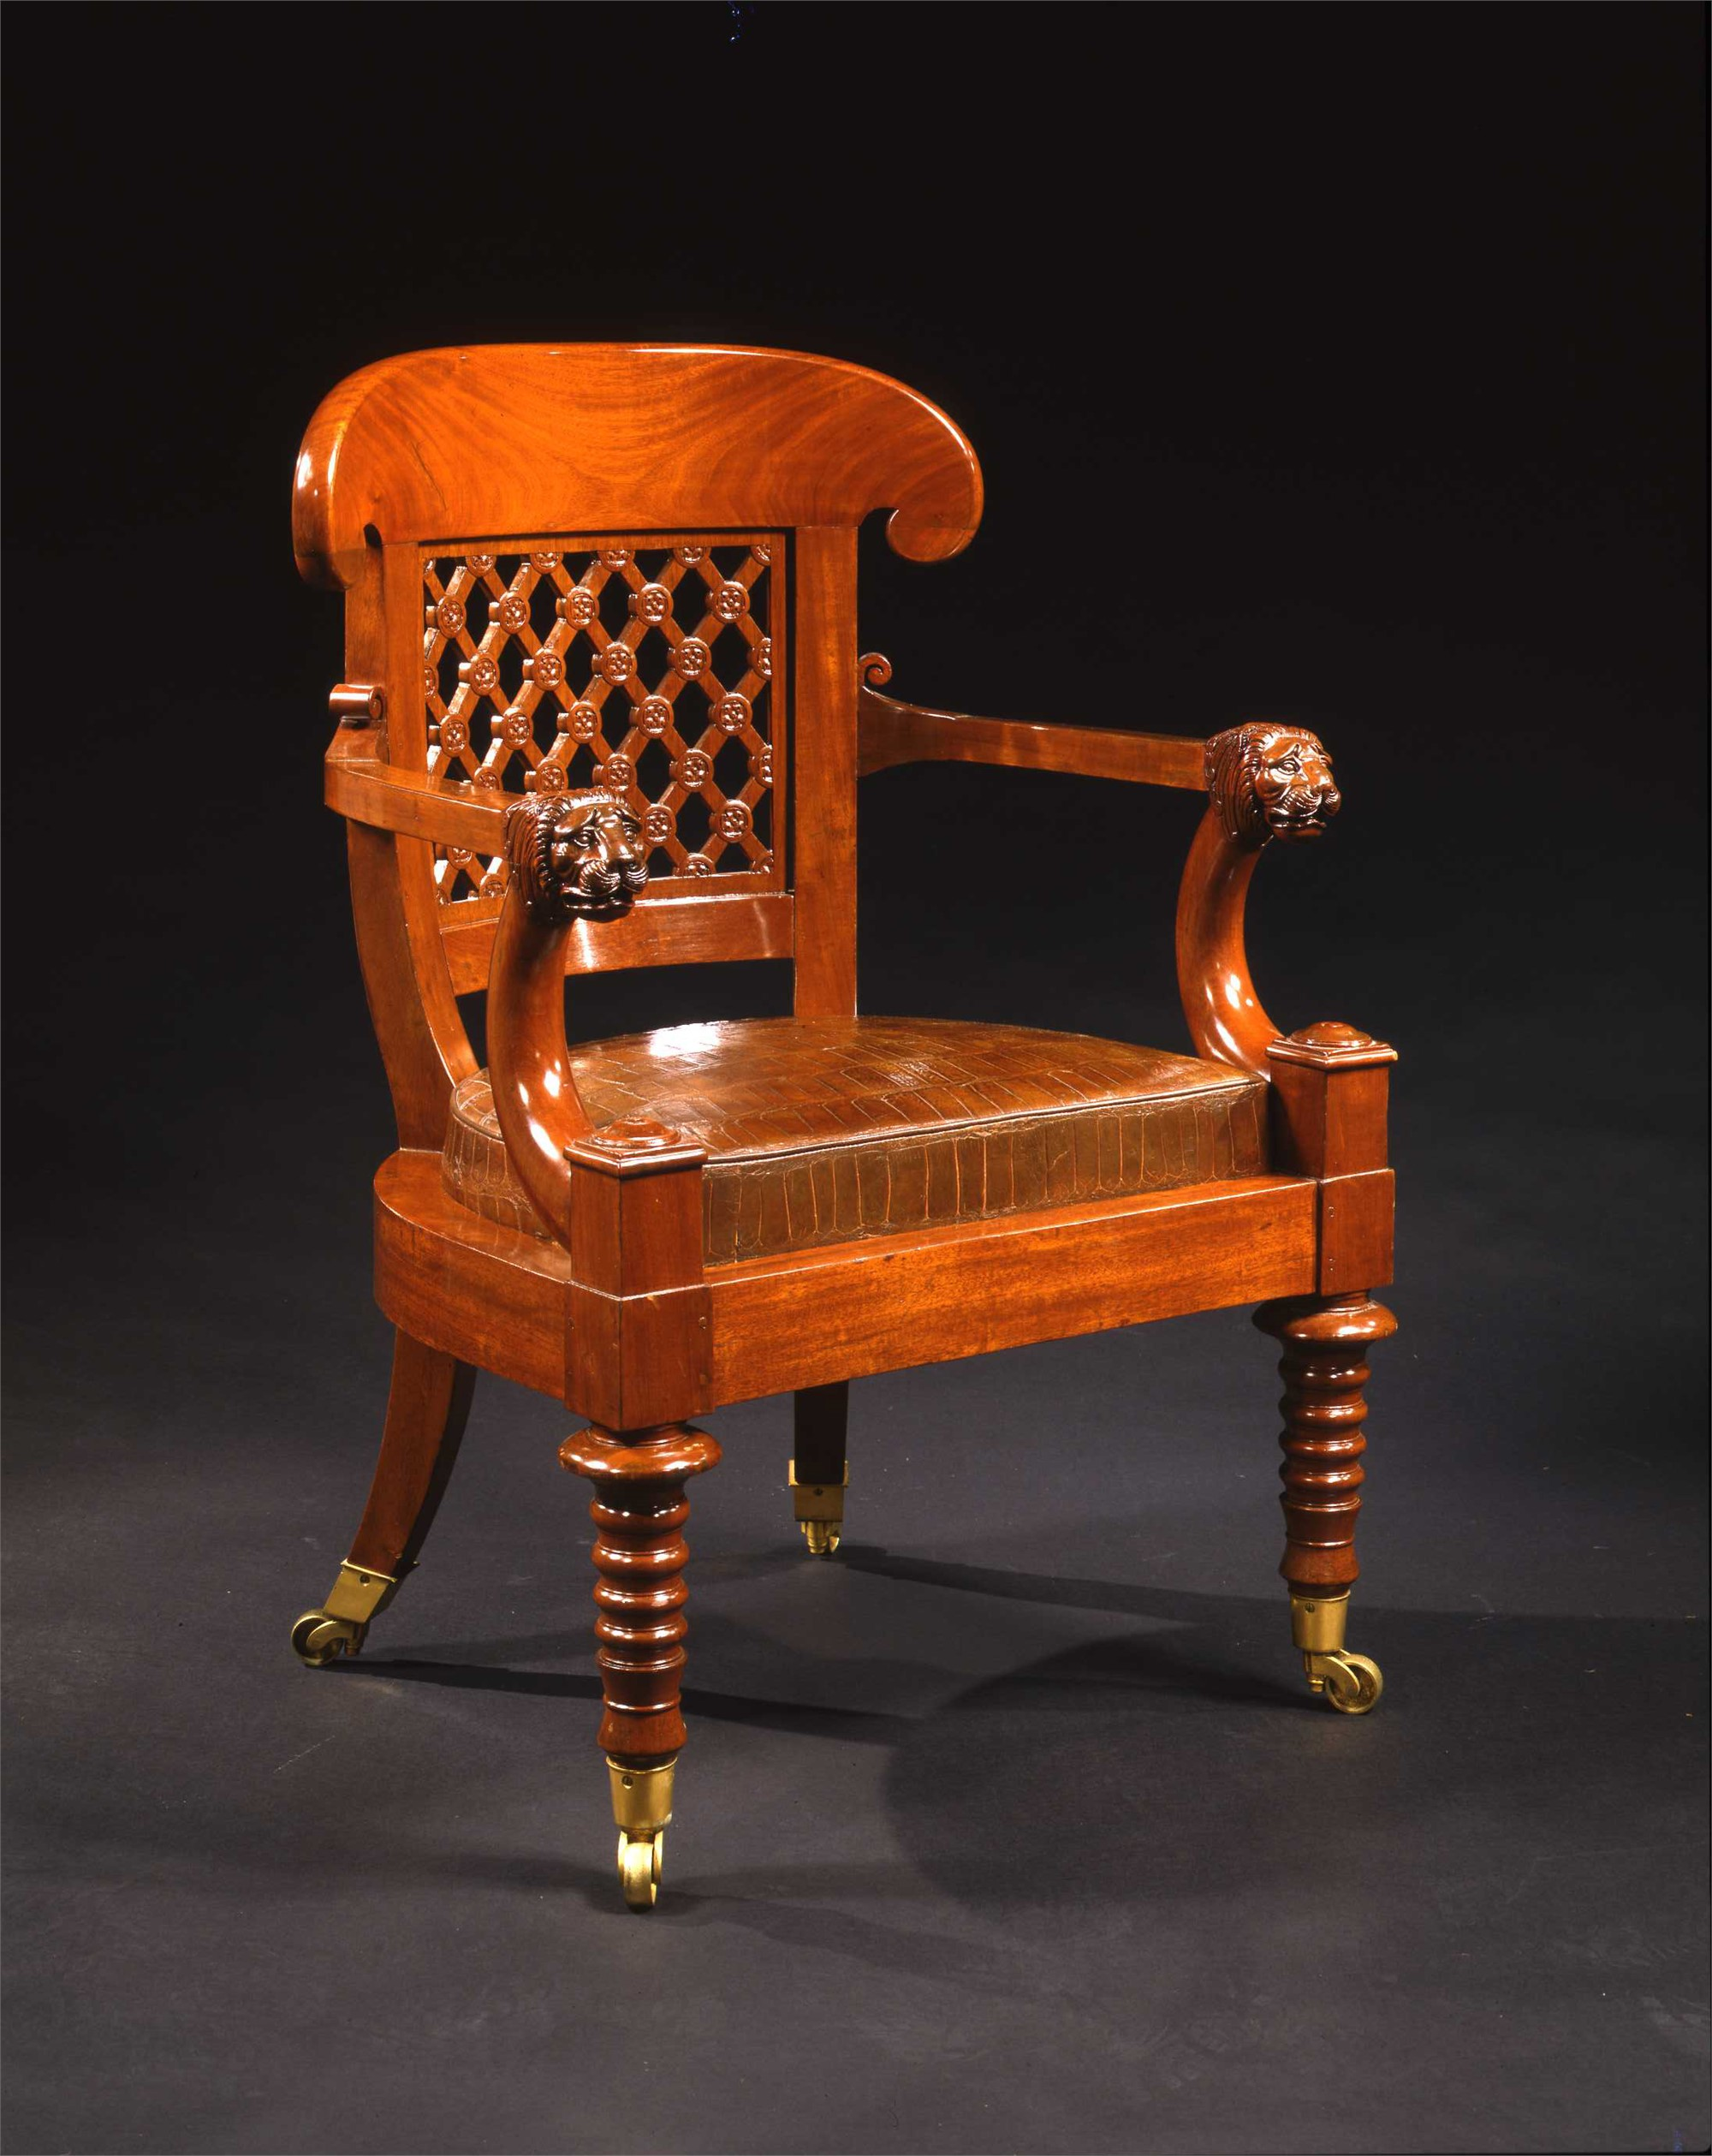 EMPIRE MAHOGANY FAUTEUIL DE BUREAU ATTRIB. TO H. JACOB